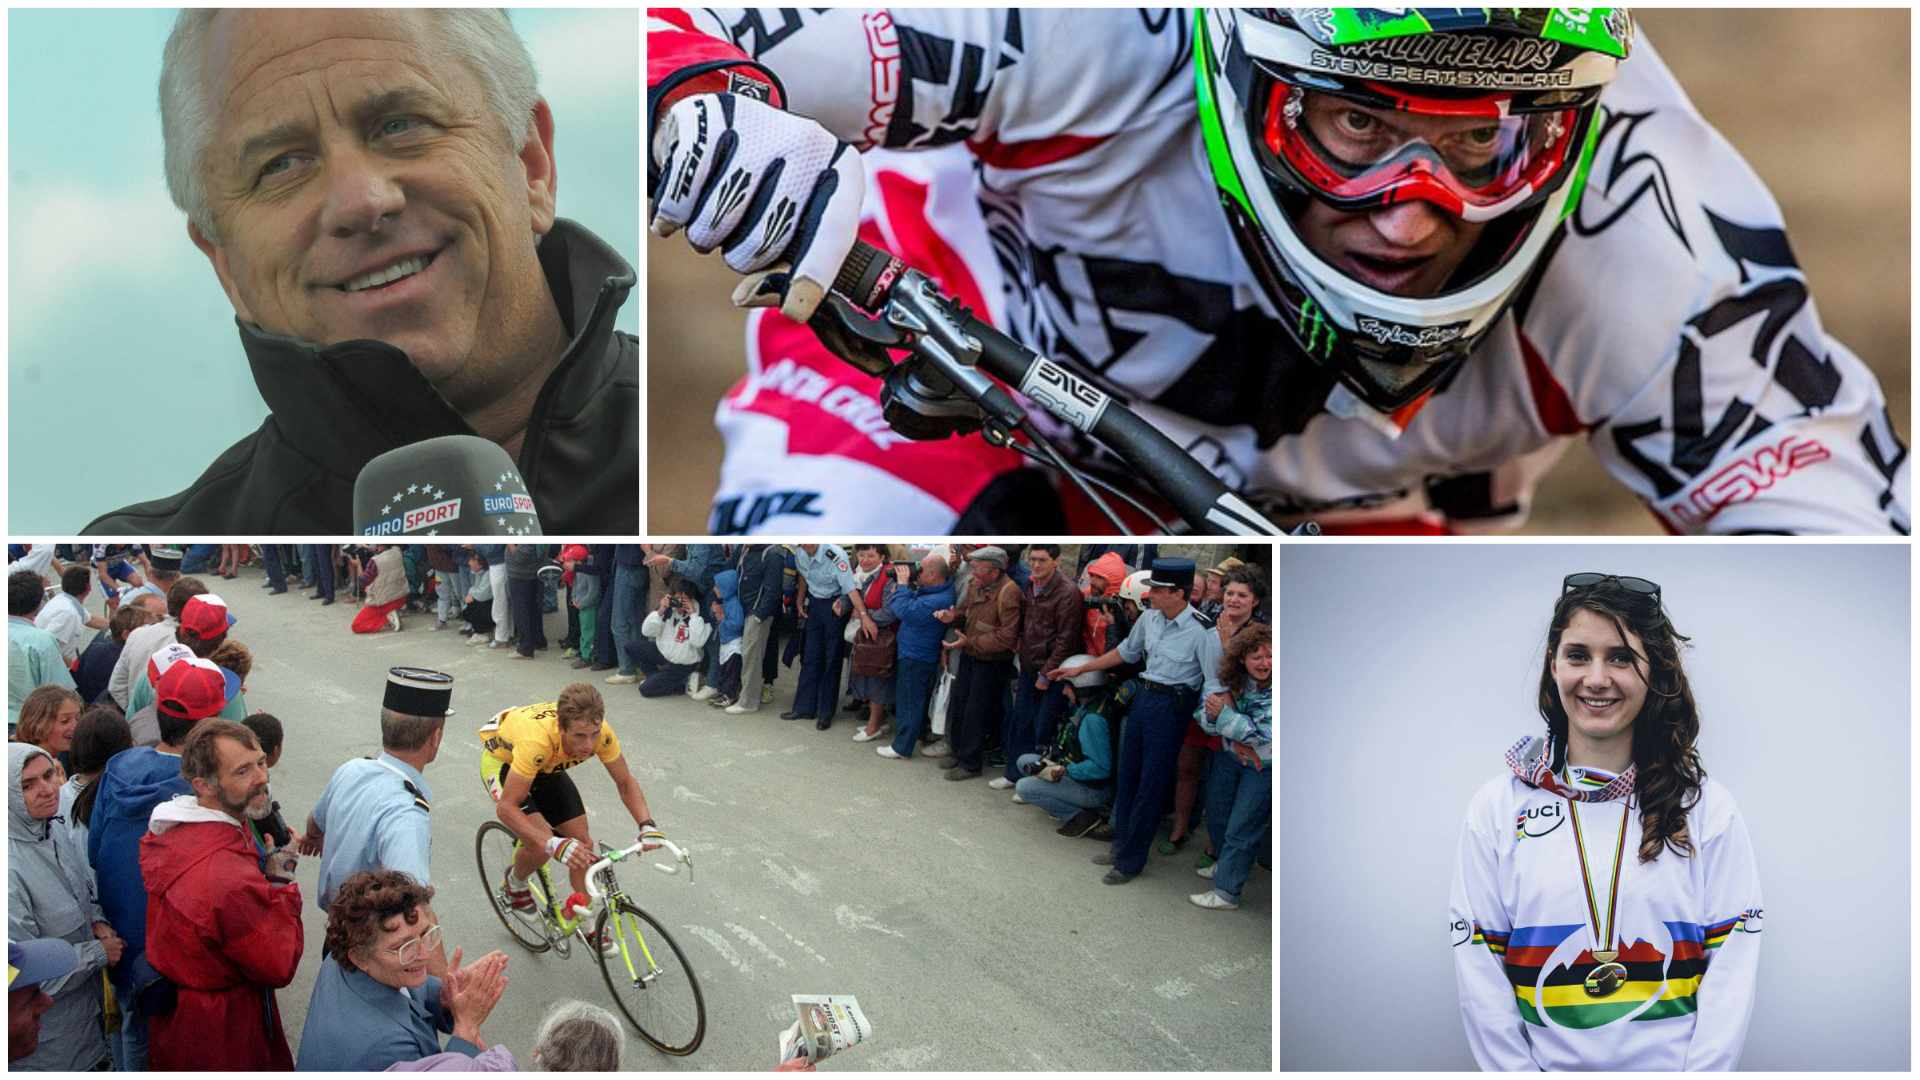 Plenty of stars will be appearing at this year's London Bike Show